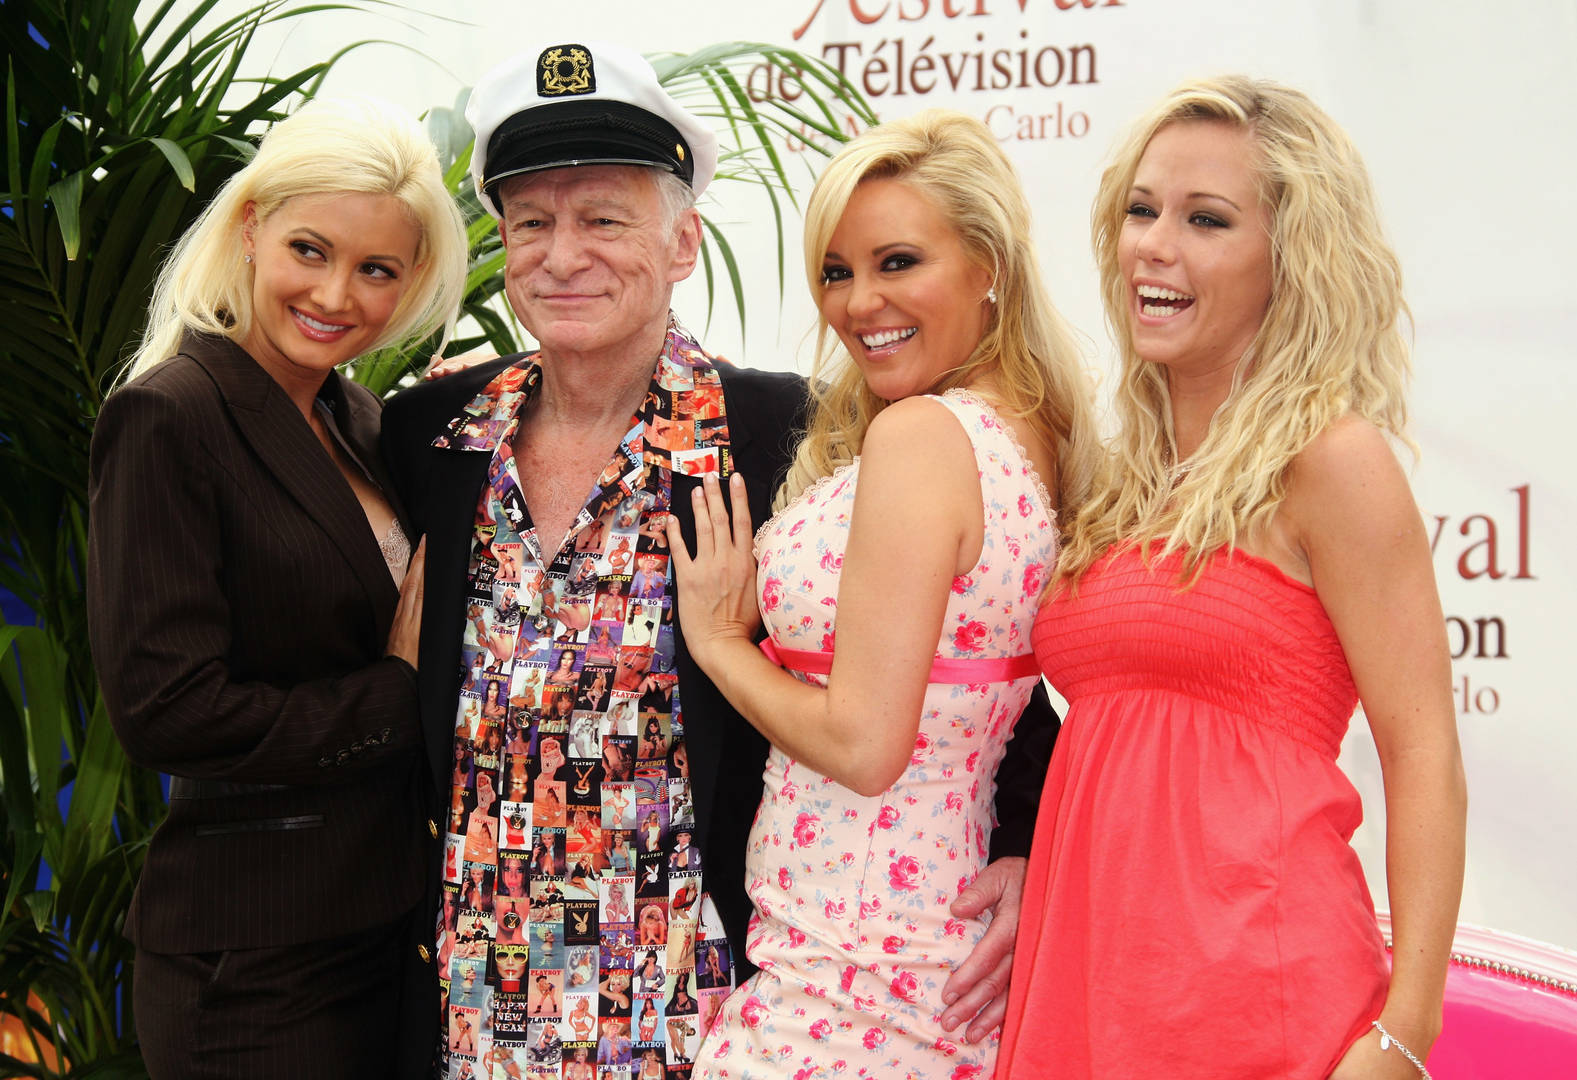 Playboy Playmate of the Year Playmate of the Month magazine honour award celebrate Hugh Hefner